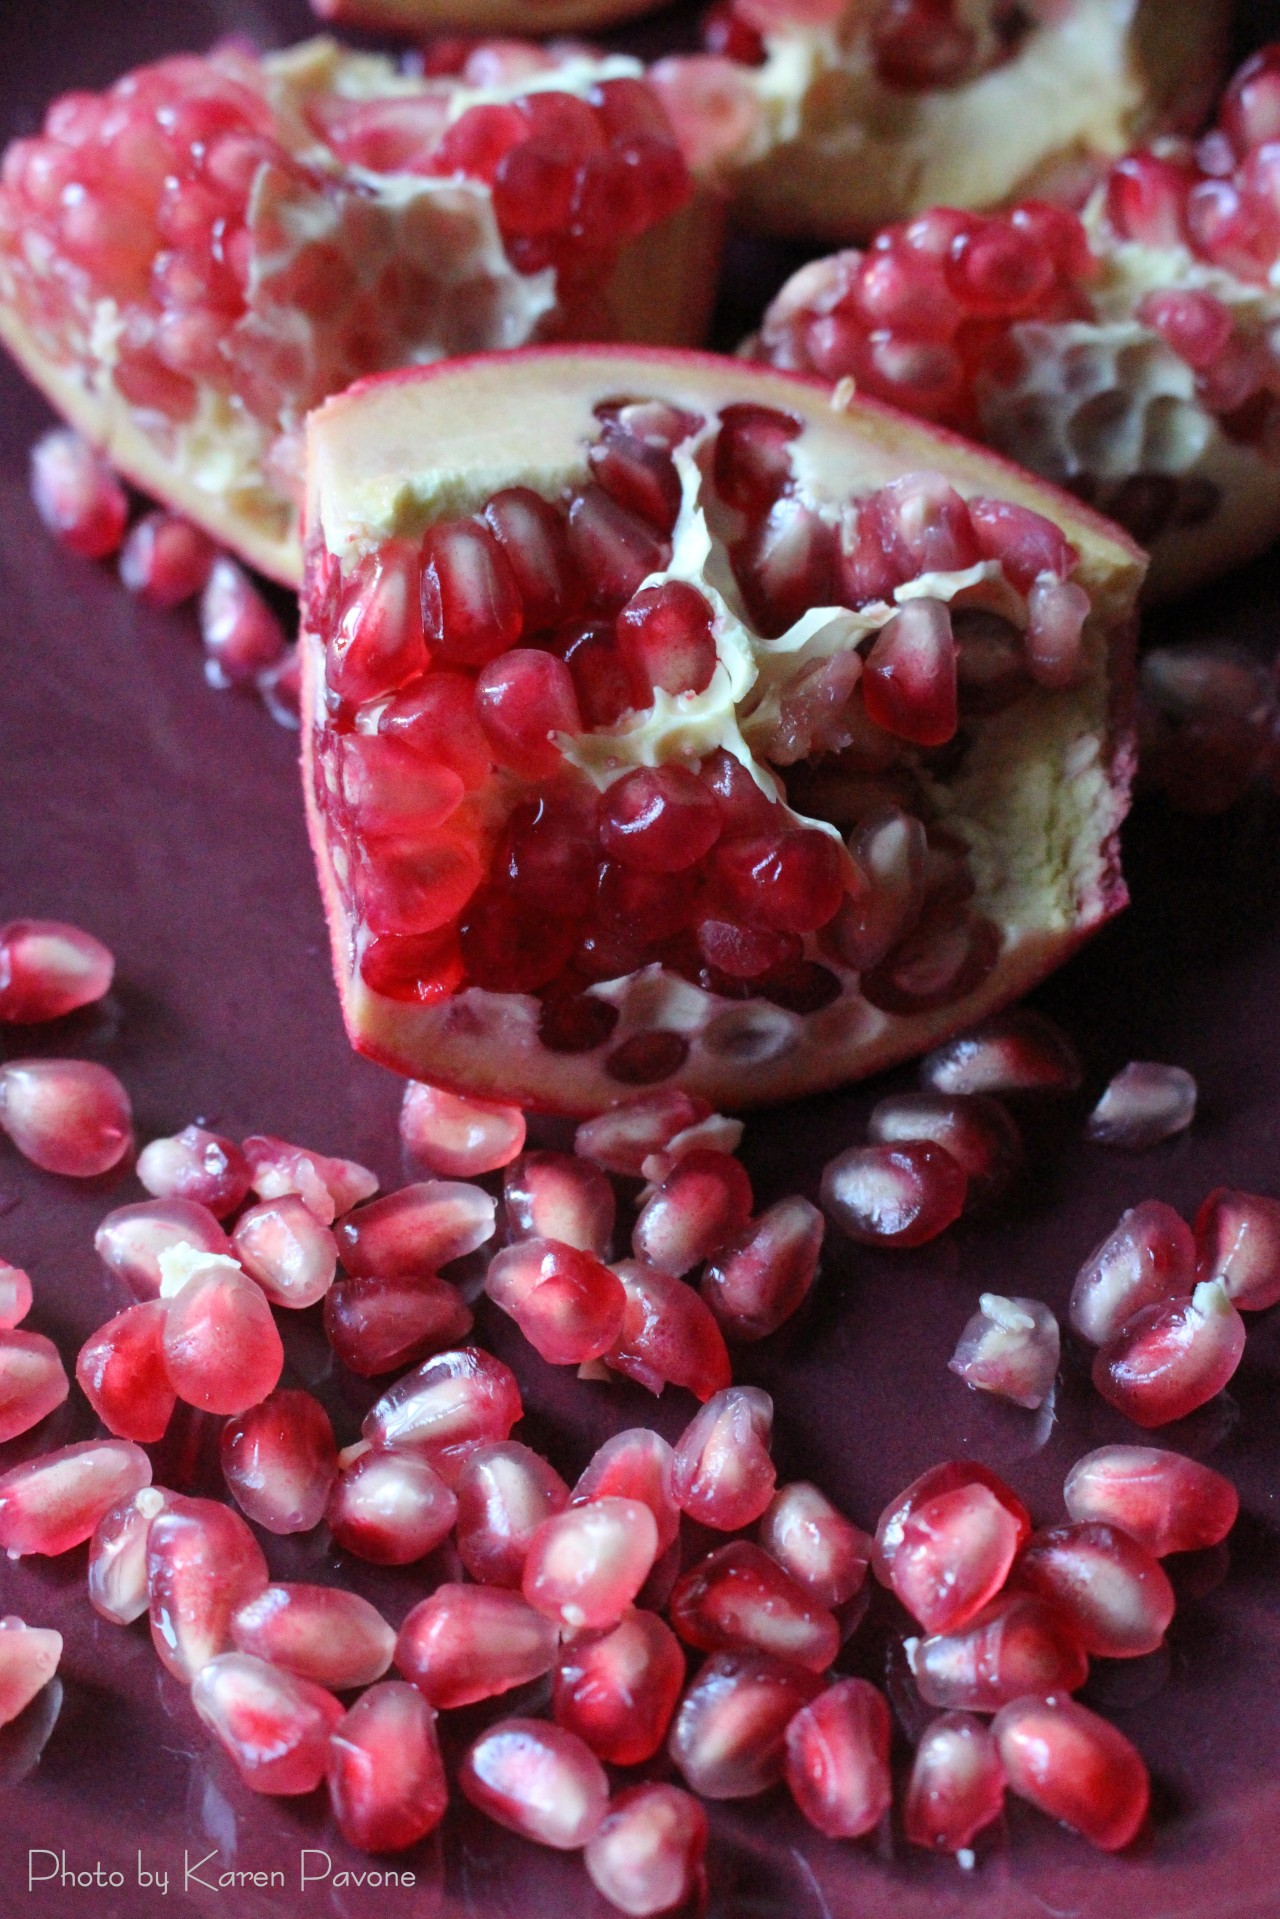 Quick tip: How to Seed a Pomegranate